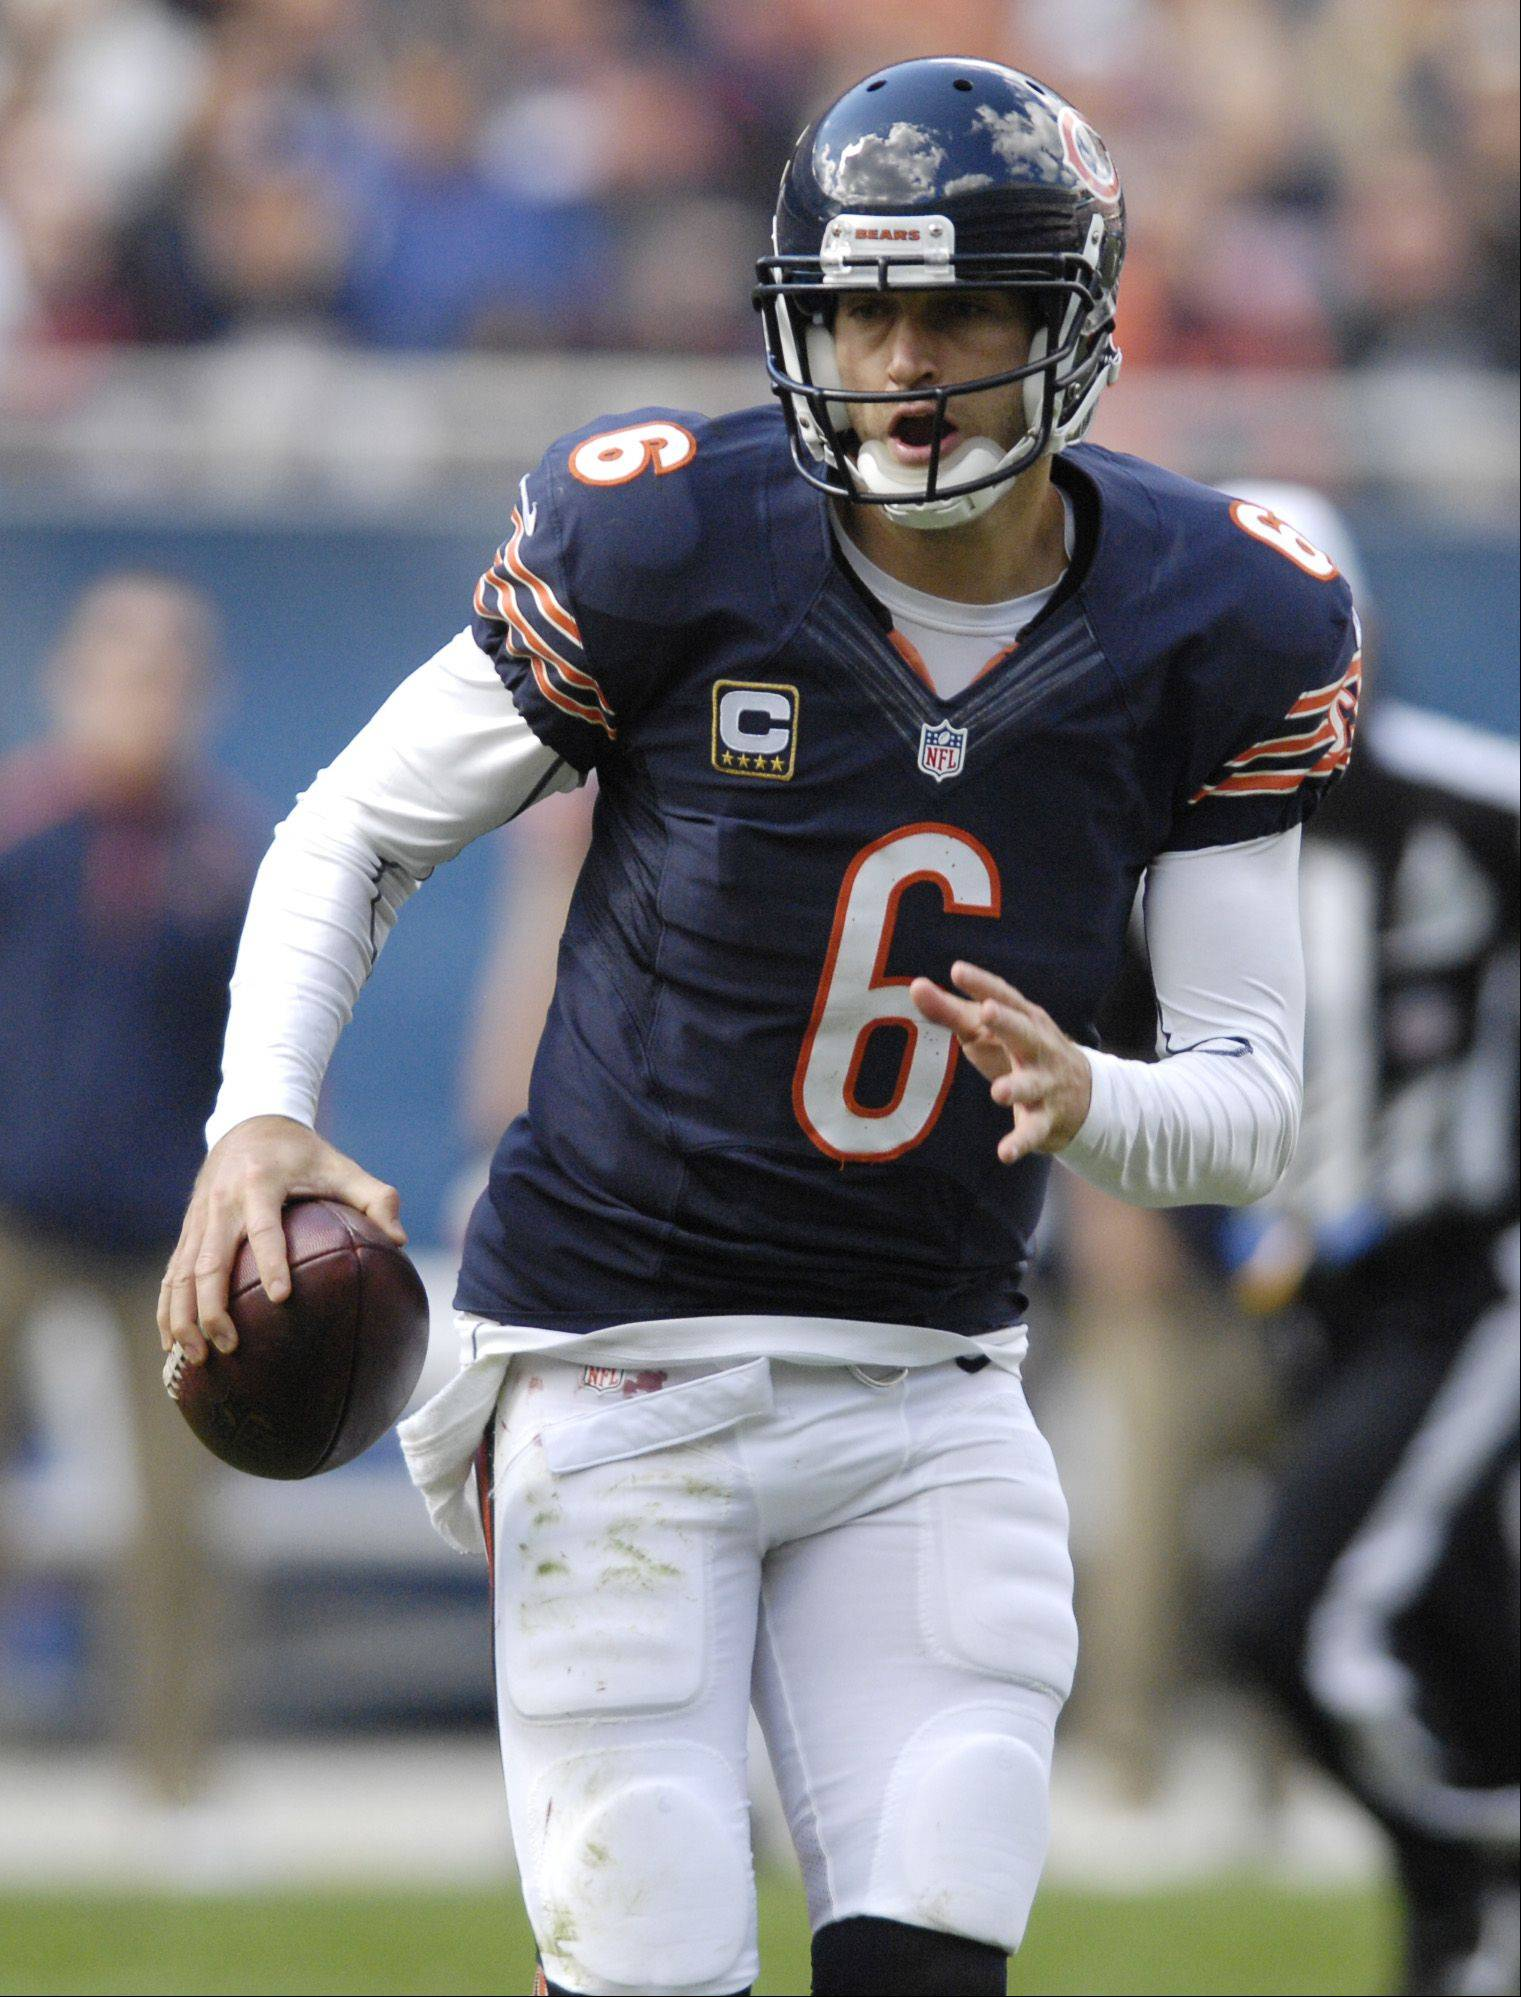 Bears quarterback Jay Cutler scrambles Sunday against the St. Louis Rams at Soldier Field.